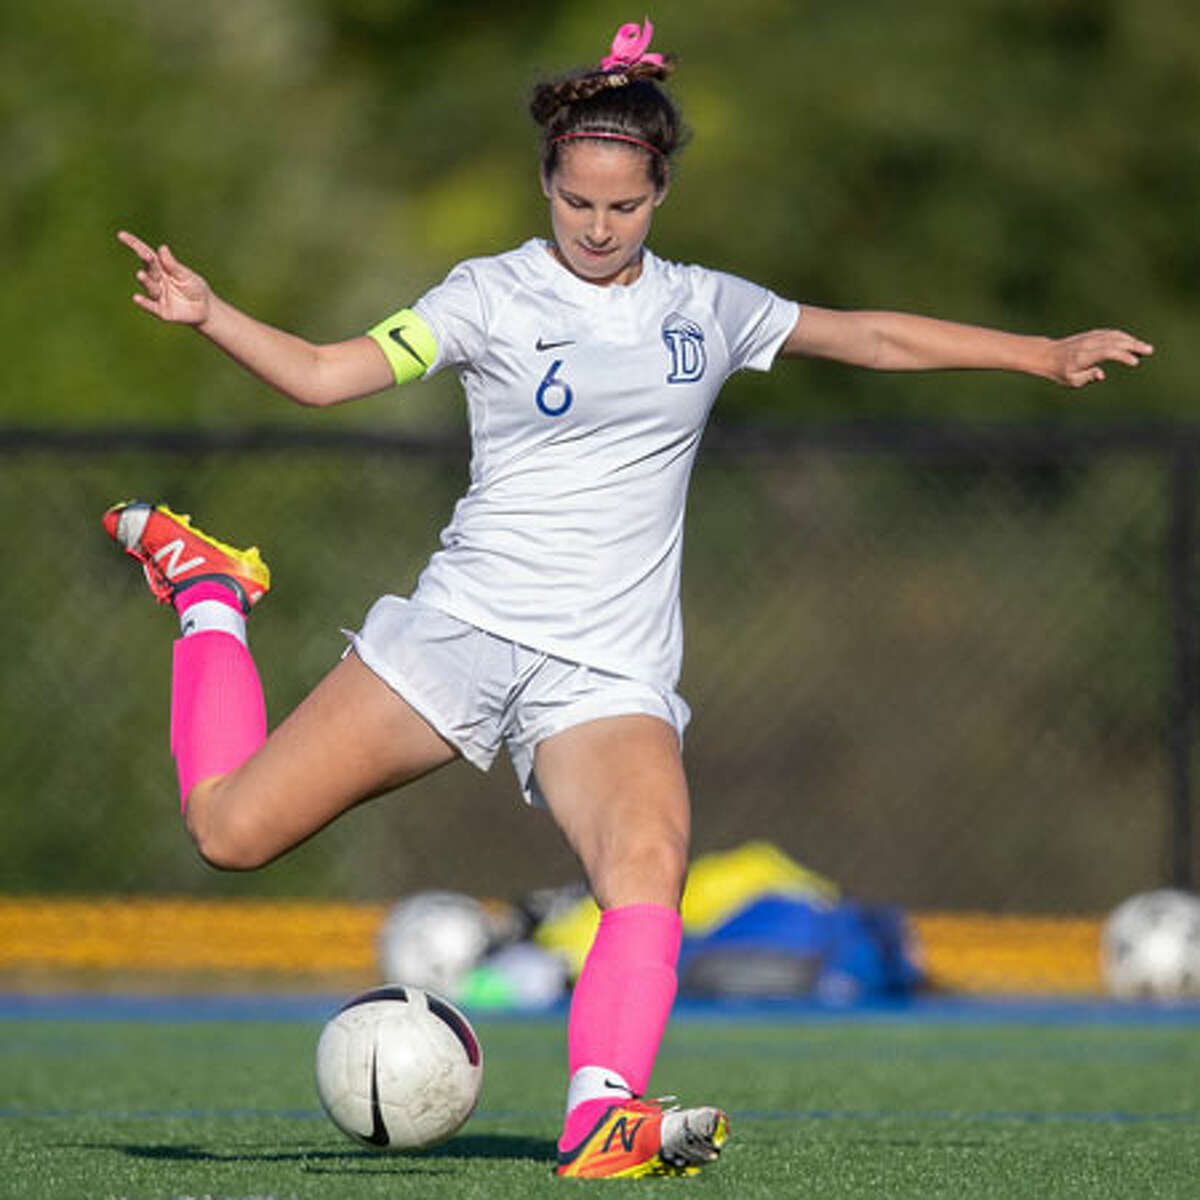 Darien's Elianna Dolan scored the game's first goal during the Wave's 2-0 win over Staples in the FCIAC quarterfinals on Thursday, Oct. 25. - Darien Athletic Foundation photo